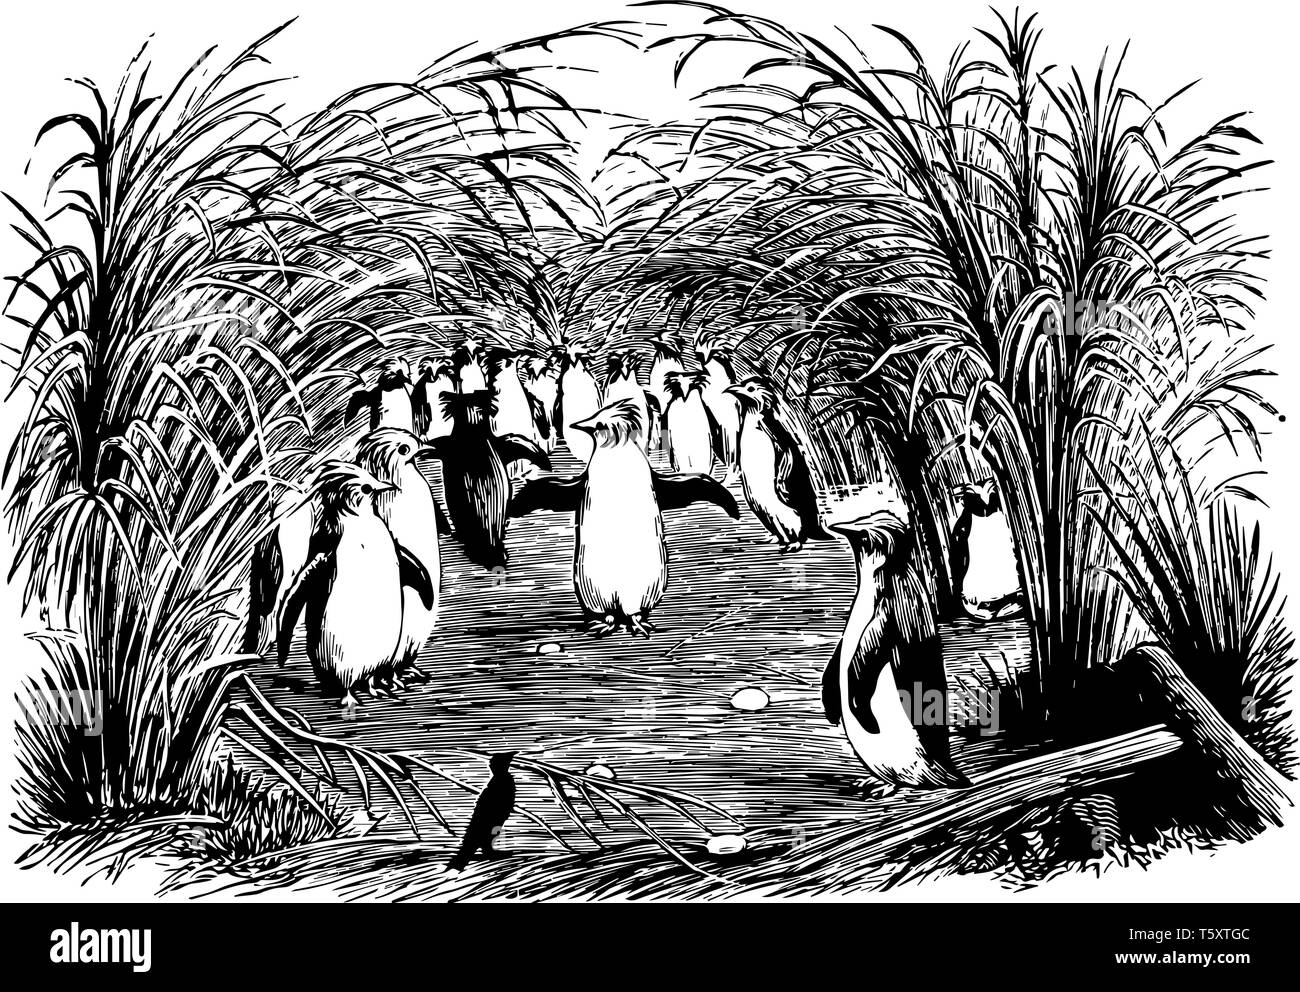 This image represents a Troop of Crested Maccaroni or Rock Hopper Penguins Nesting Under the Shade of Tussock of Trees, vintage line drawing or engrav - Stock Image